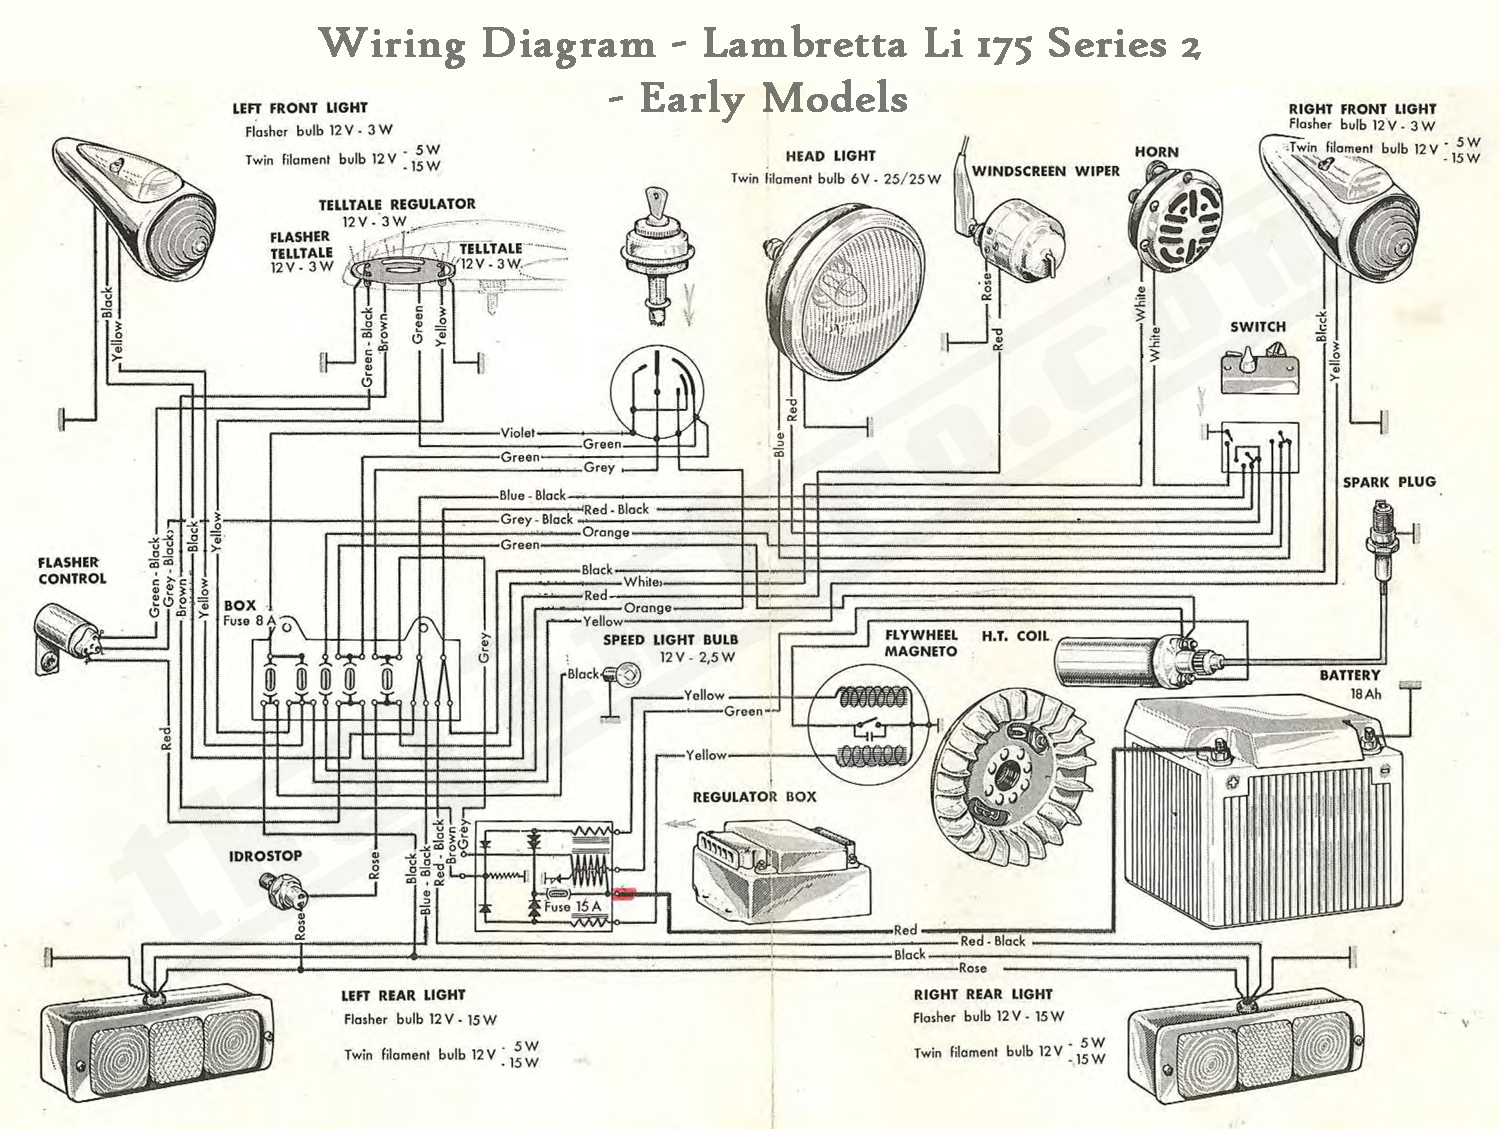 lambretta wiring diagram for minn kota trolling motors series 2 33